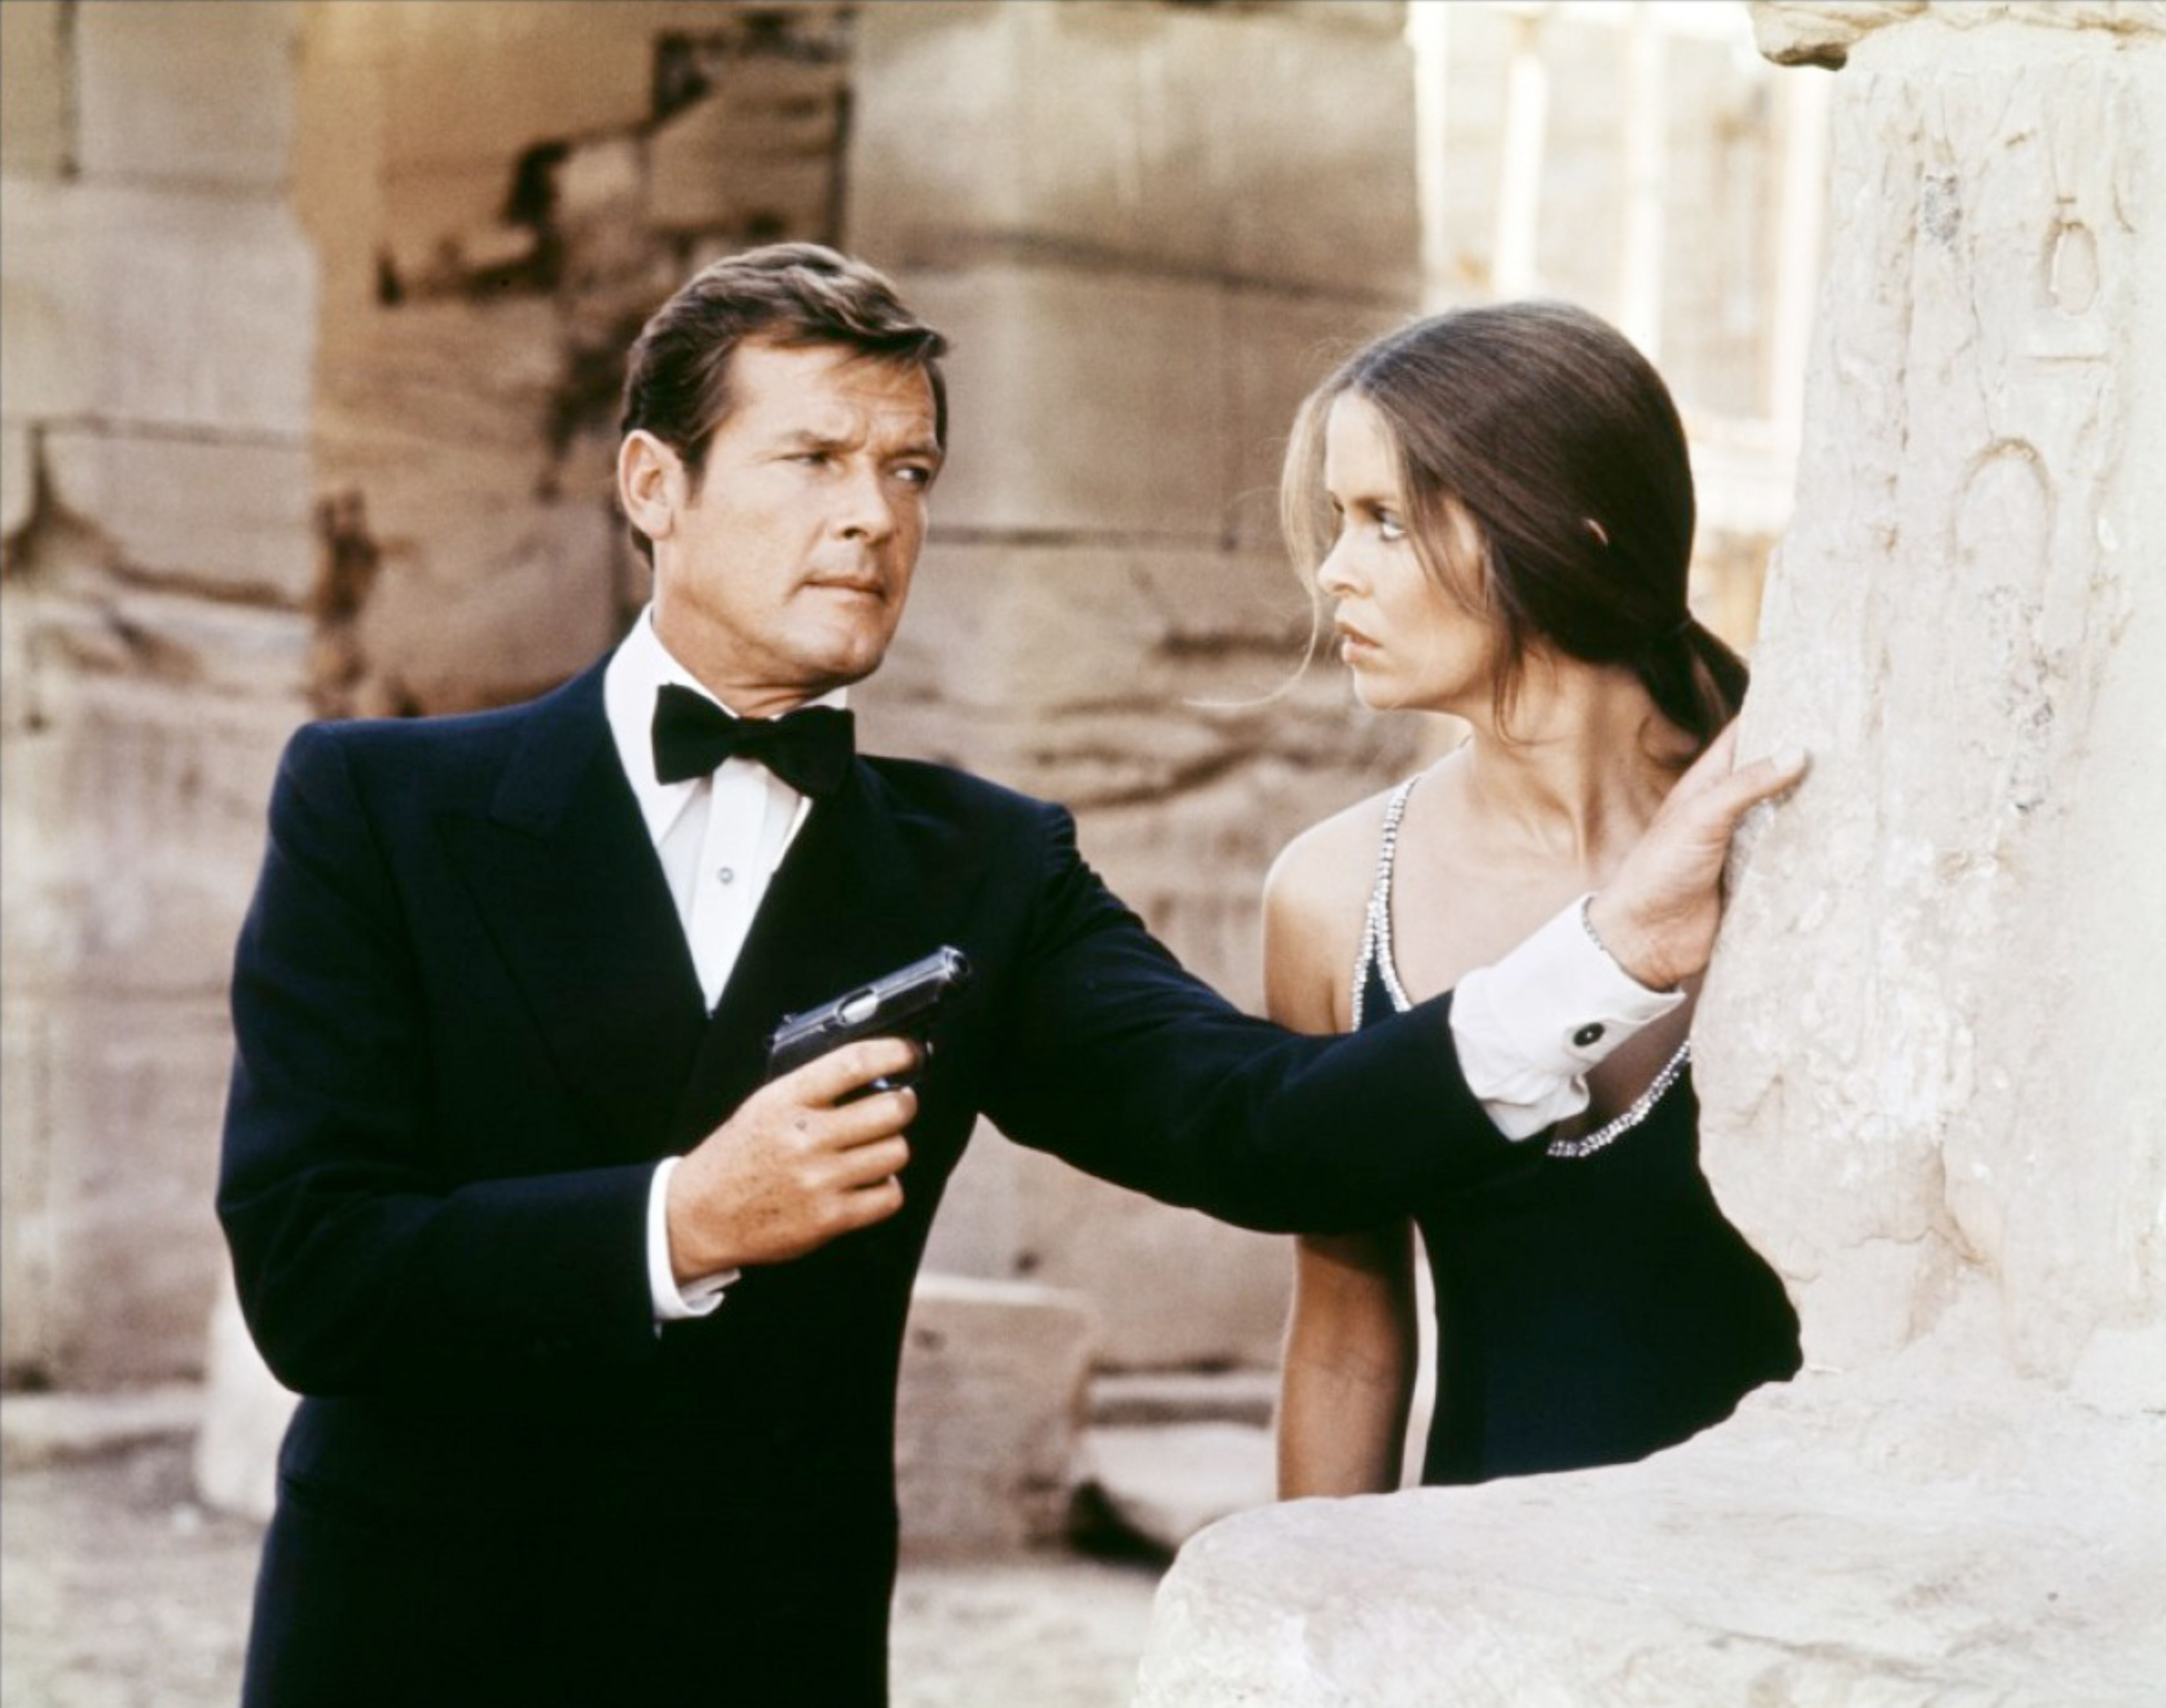 Roger Moore And Barbara Bach On Location In Egypt 4922x3882